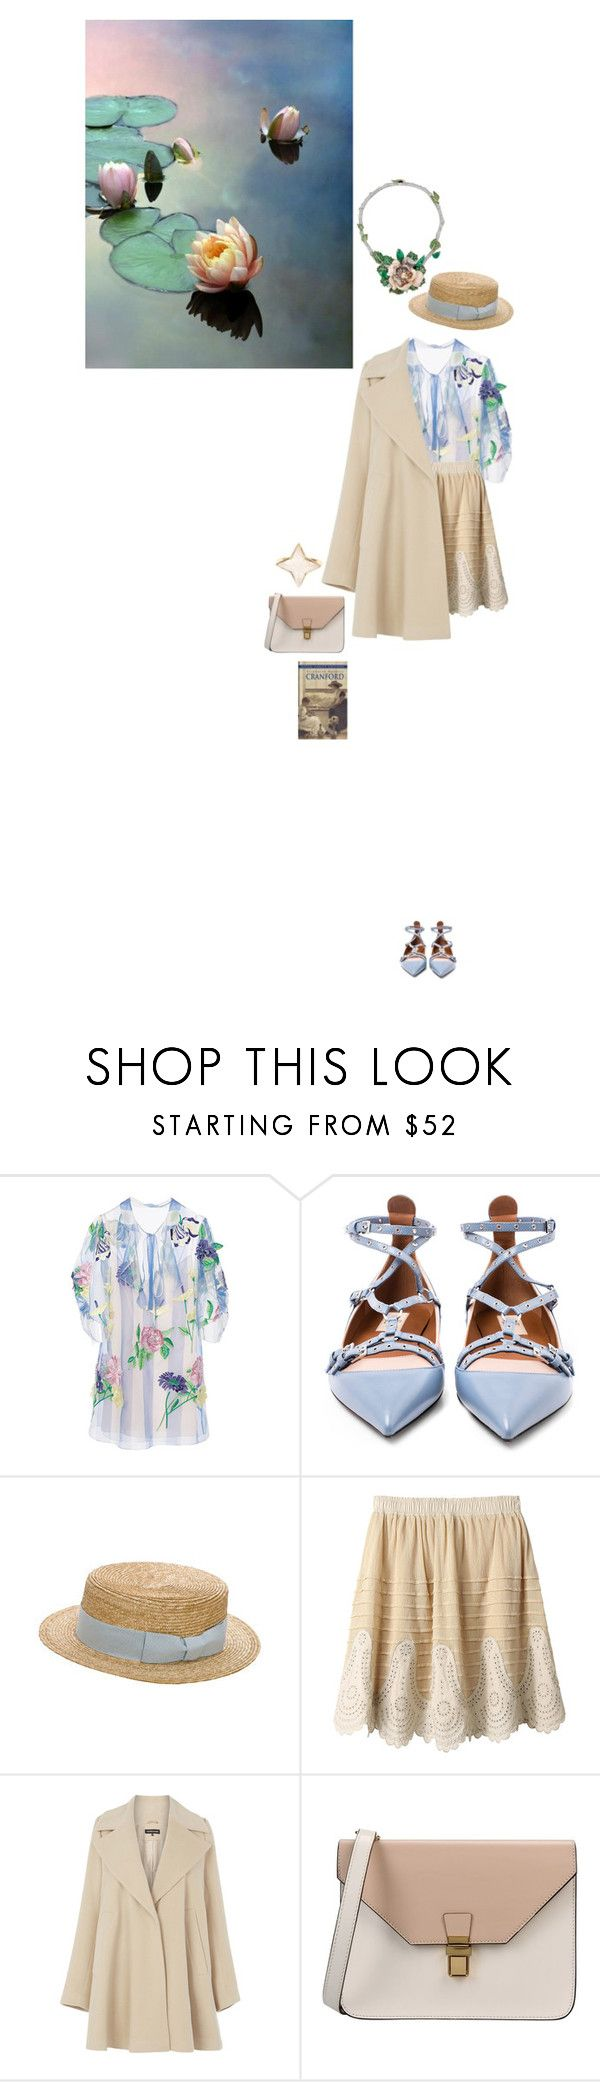 """""""Летние мысли"""" by anya-moscow ❤ liked on Polyvore featuring Blumarine, Valentino, Anthony Peto, Warehouse, 8 and Theodora Warre"""